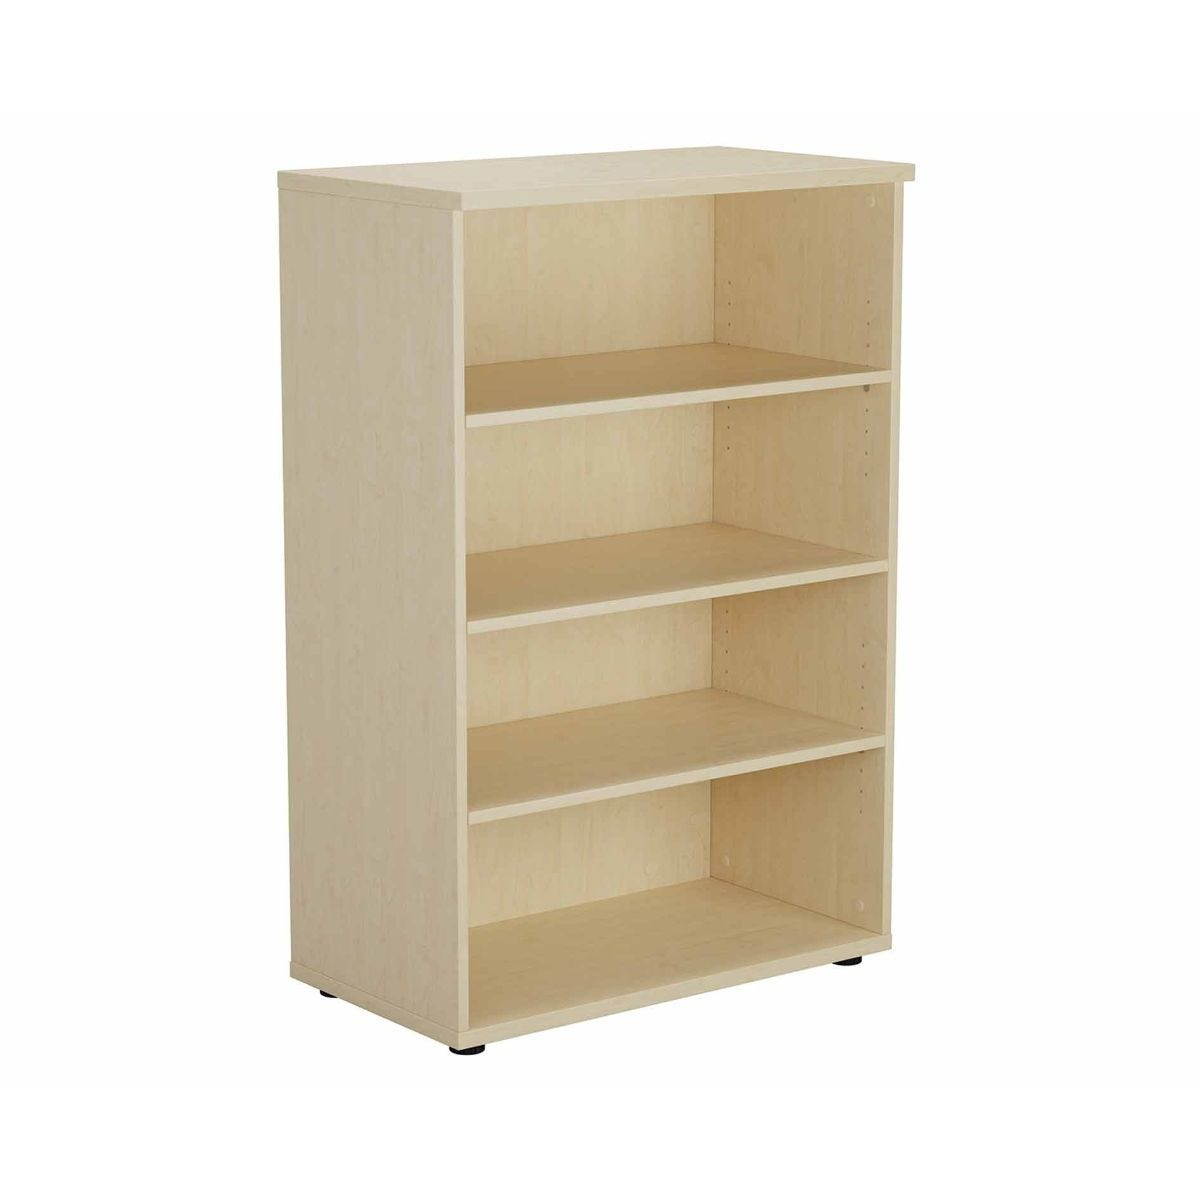 Bookcases Shelving Storage Furniture Jual Furnishings